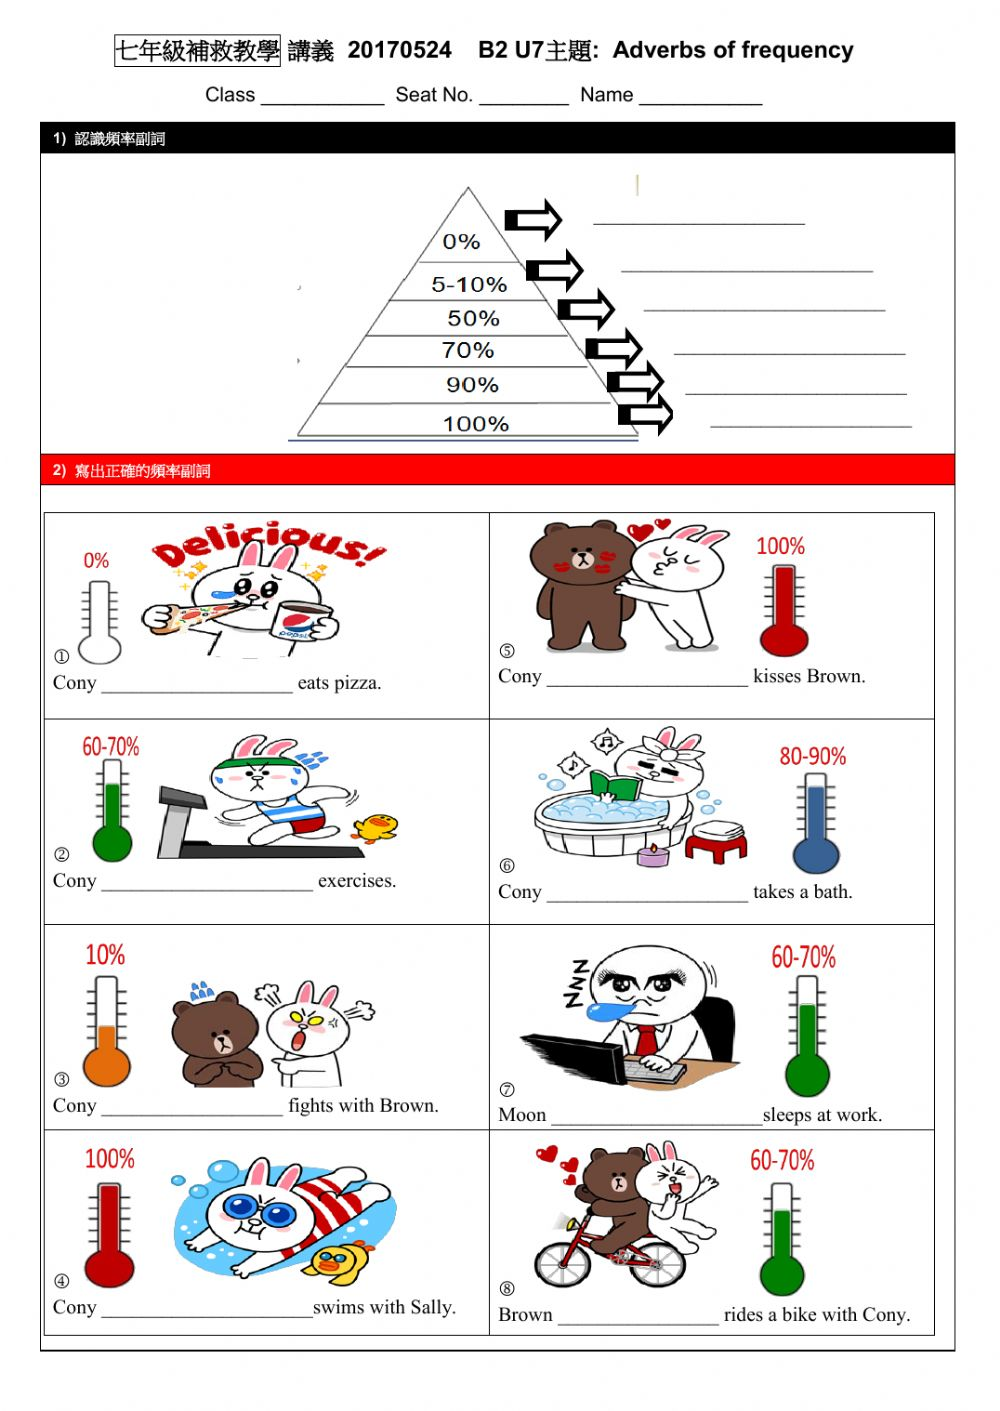 adverbs of frequency online worksheet and pdf Christmas Grinch Clip Art Christmas Grinch Clip Art